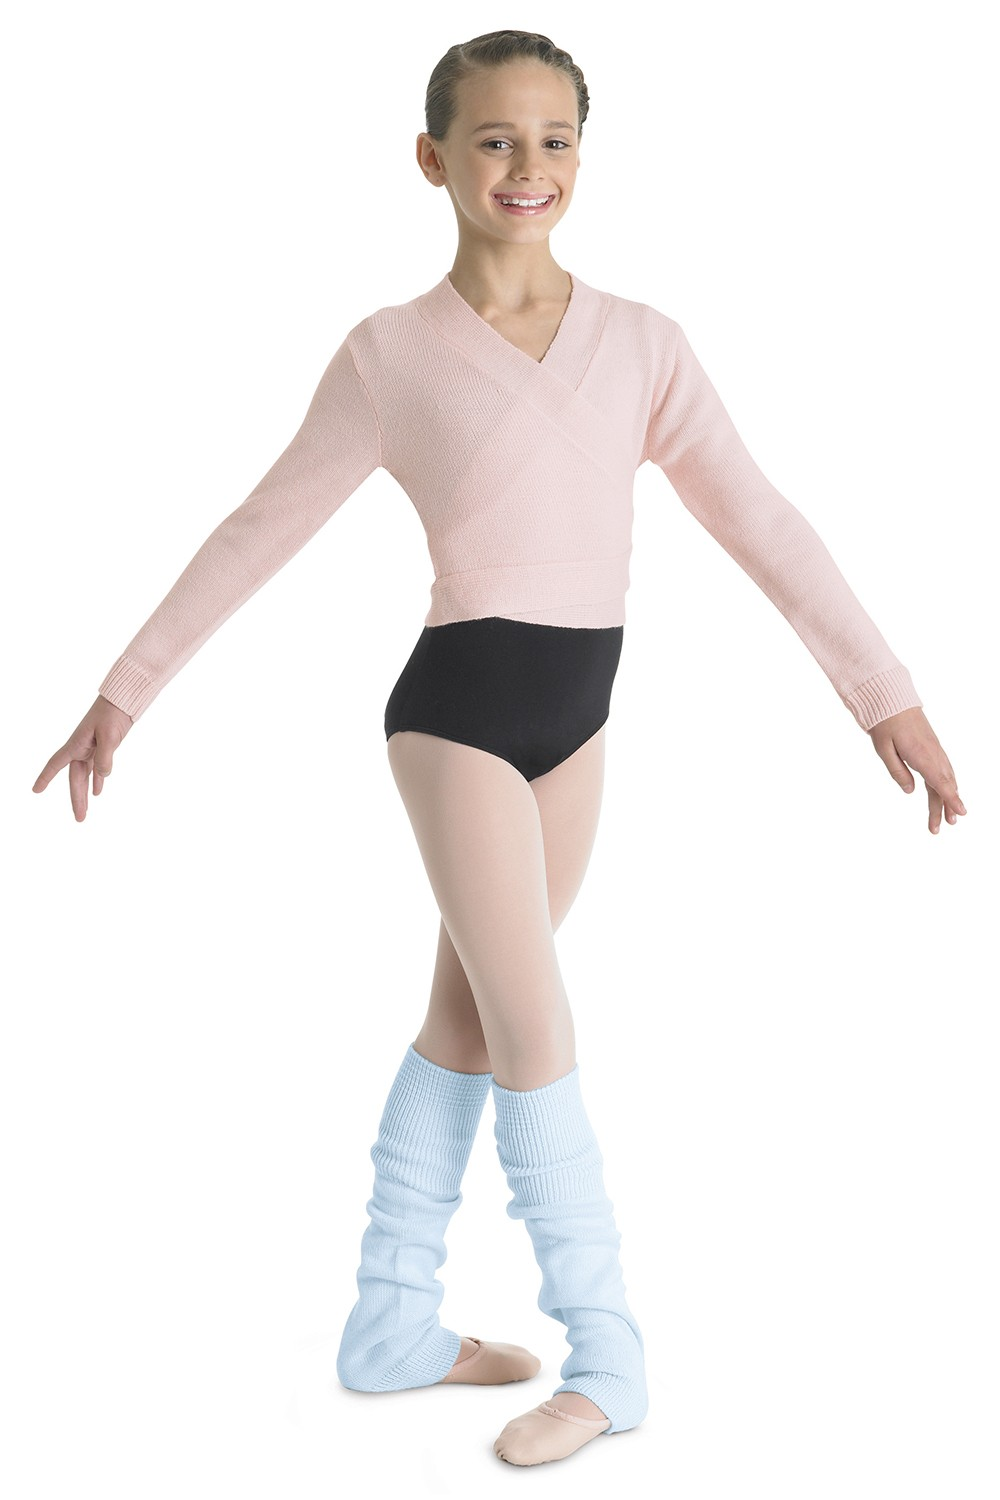 Girls Knee High Leg Warmer Children's Dance Warmups